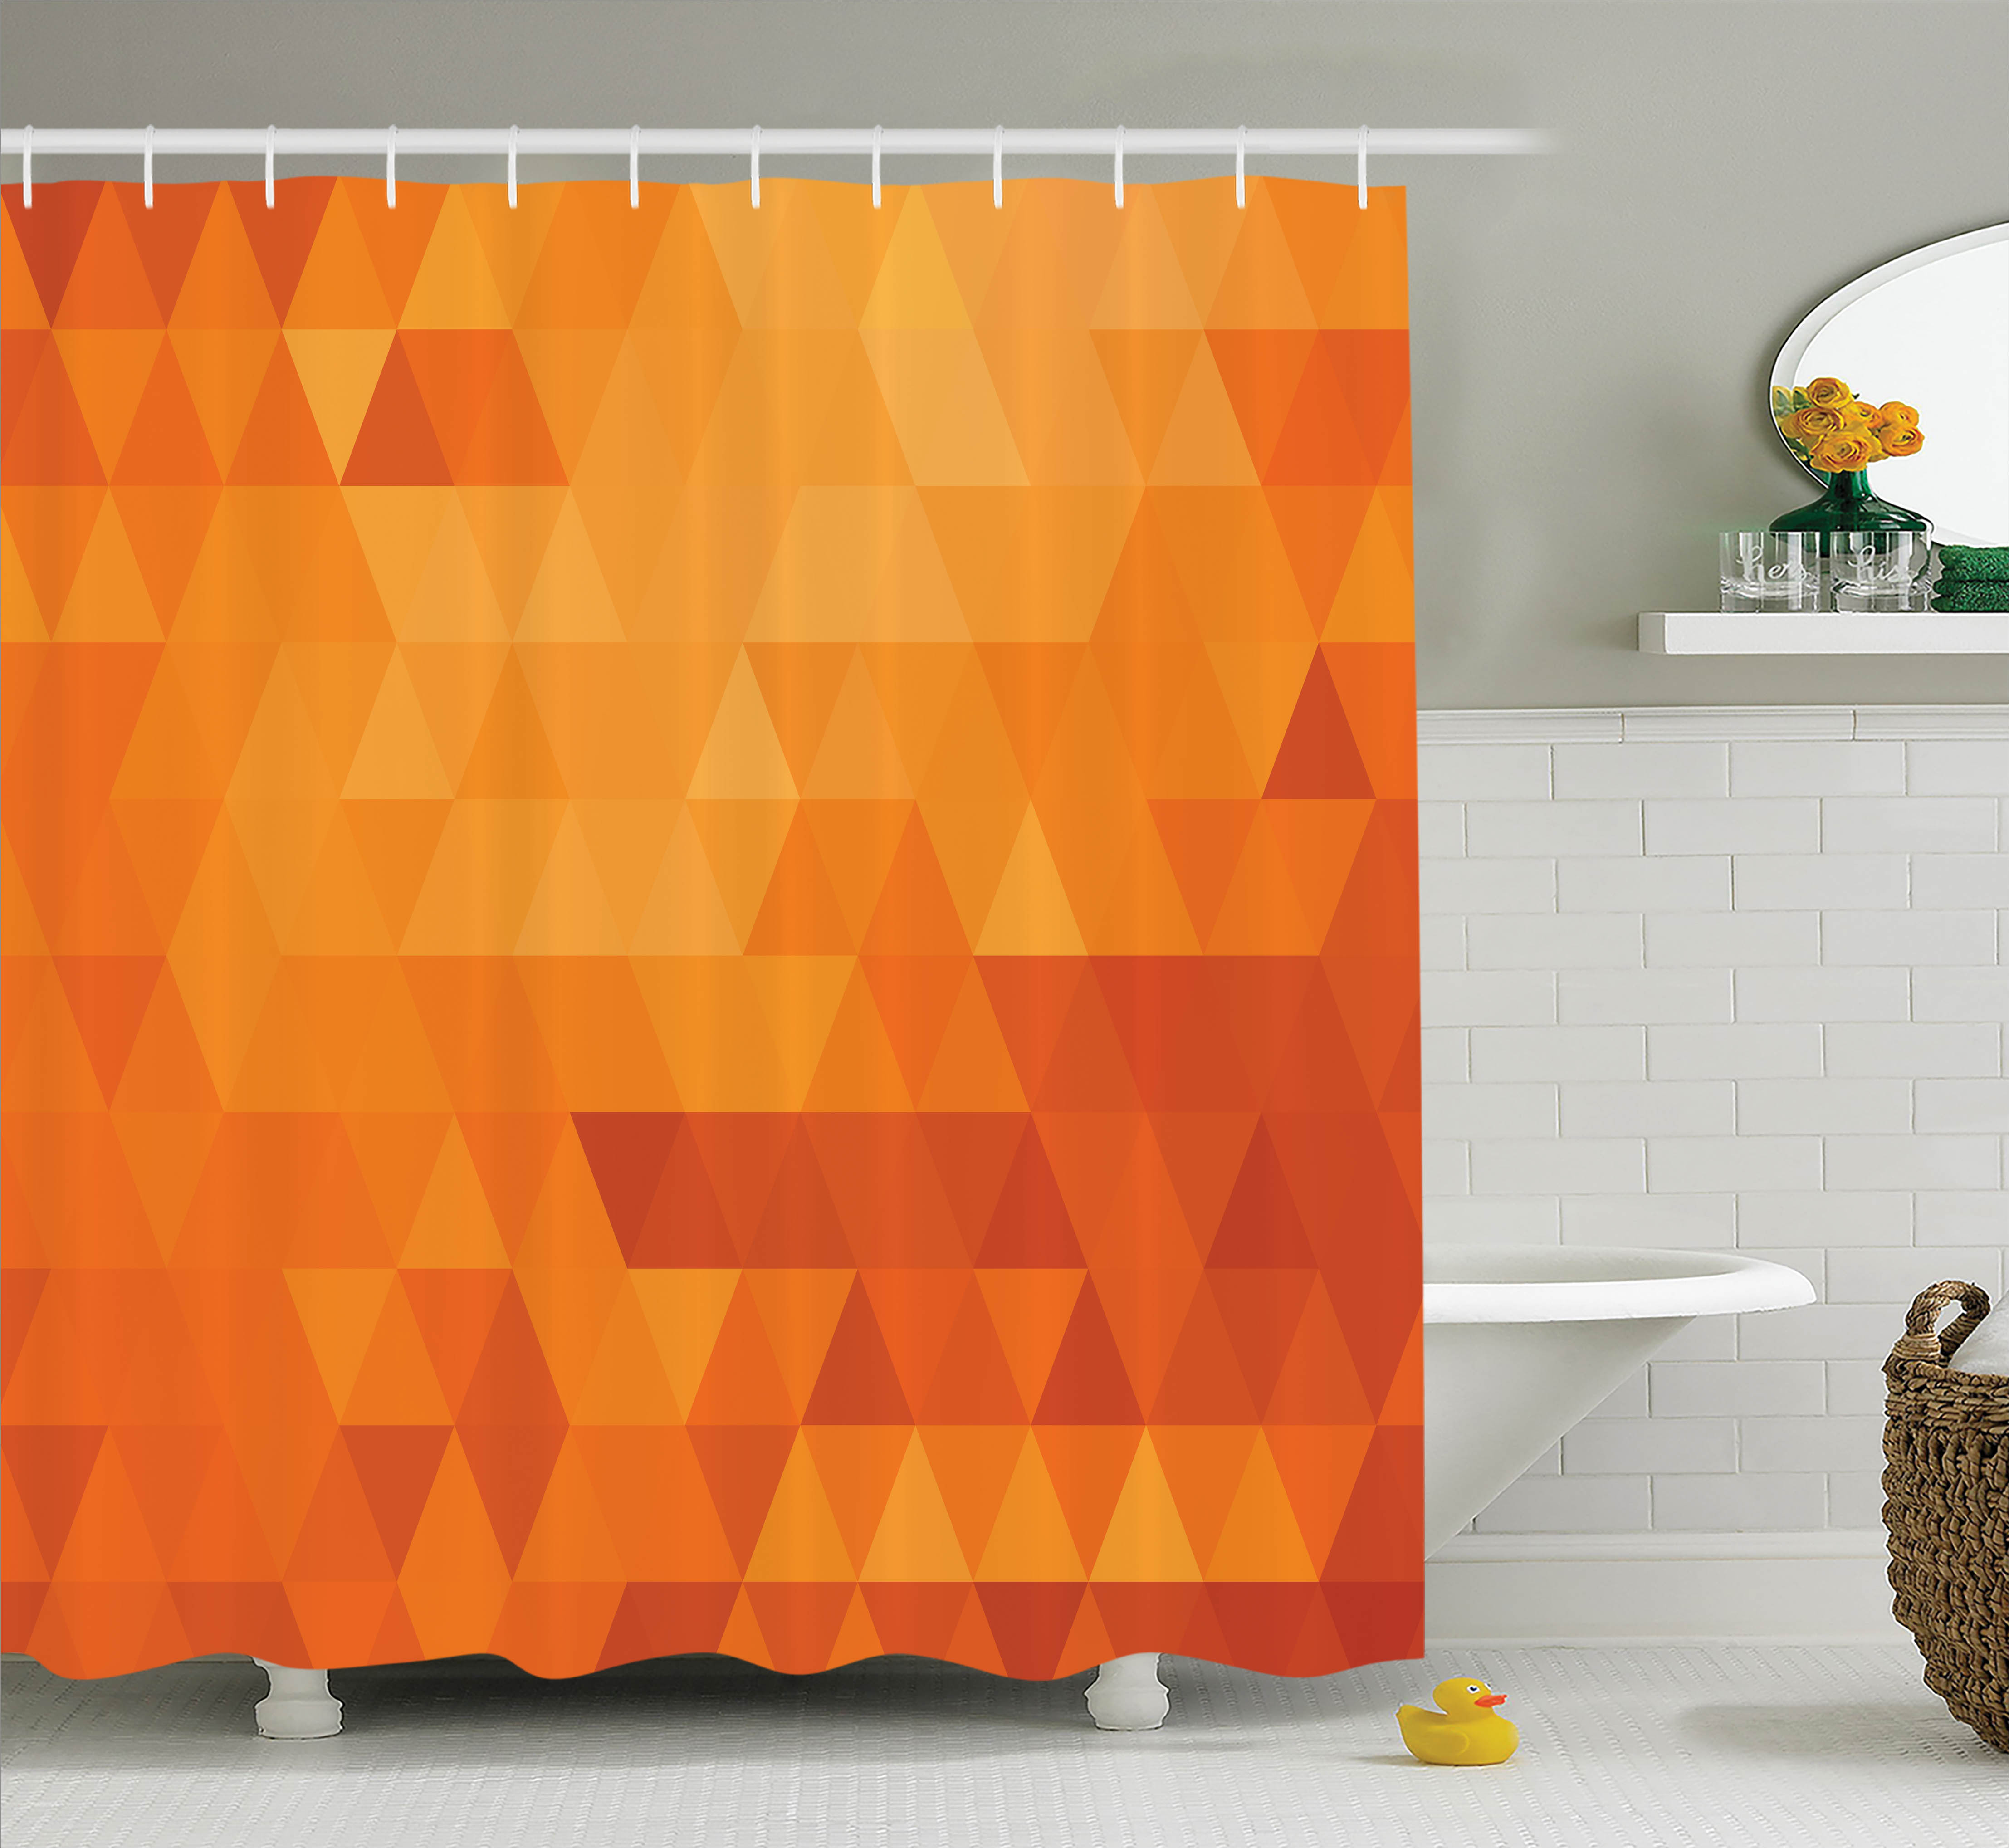 Orange Shower Curtain Set Triangle Mosaic Shaded Shapes And Patterns Abstract Digital Pixel Decorative Home Bathroom Decor Burnt By Ambesonne